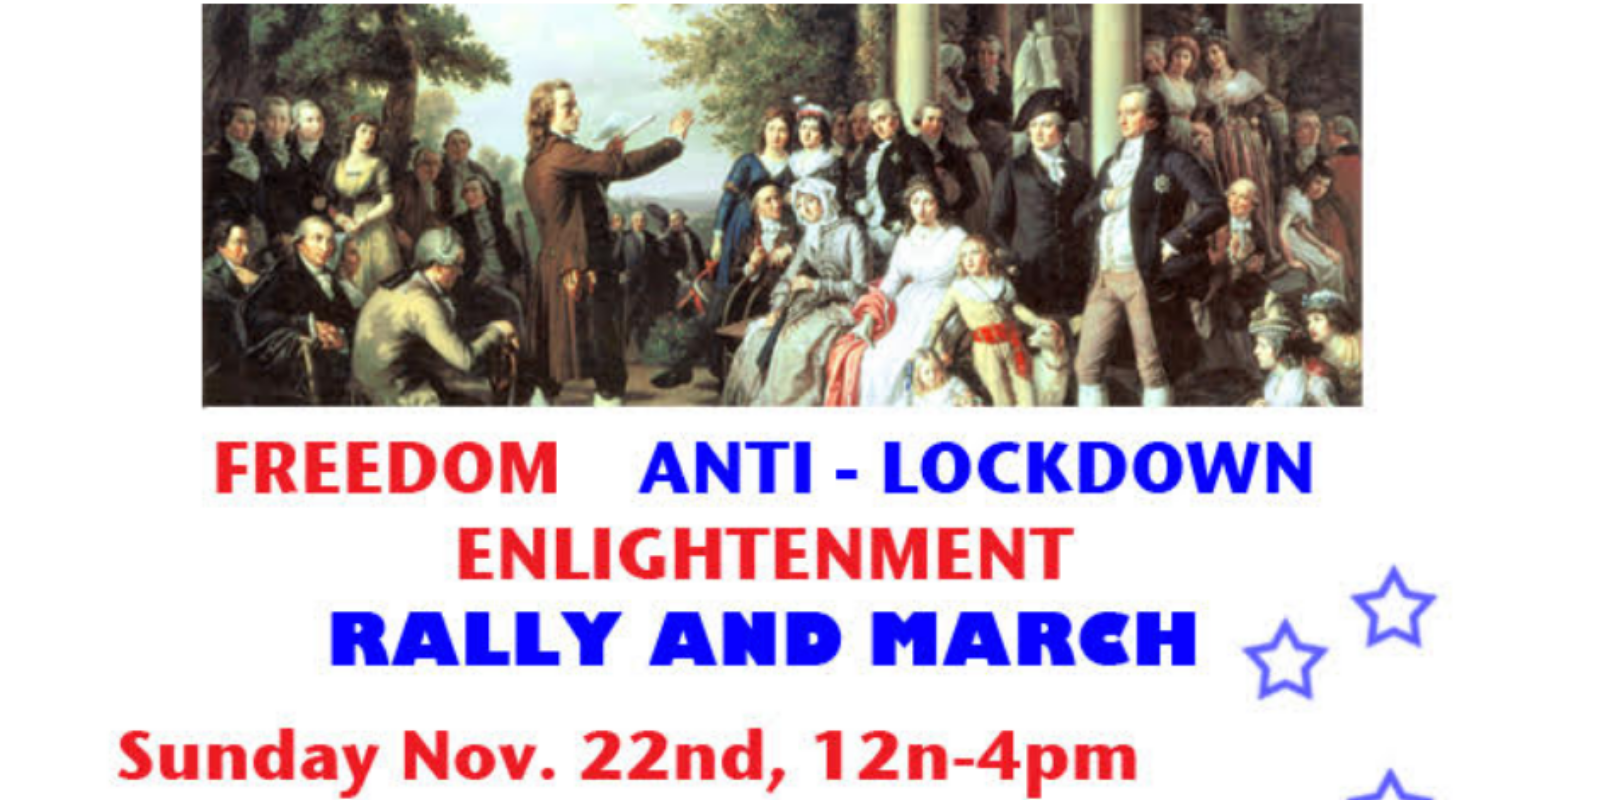 Anti-lockdown rally in New York demands that we question authority and take back our lives